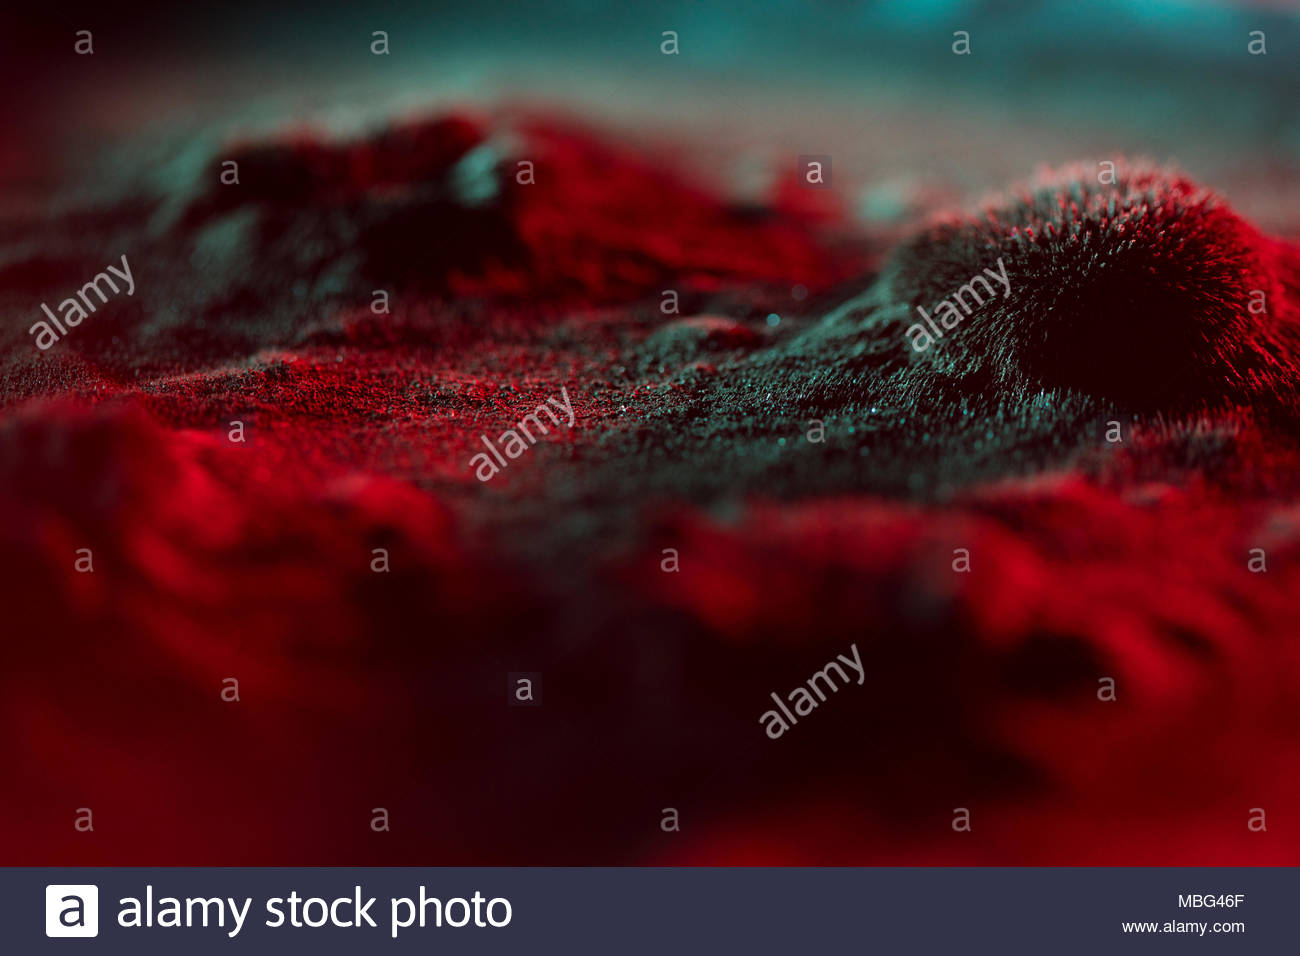 Microscopic red virus spore growth - Stock Image